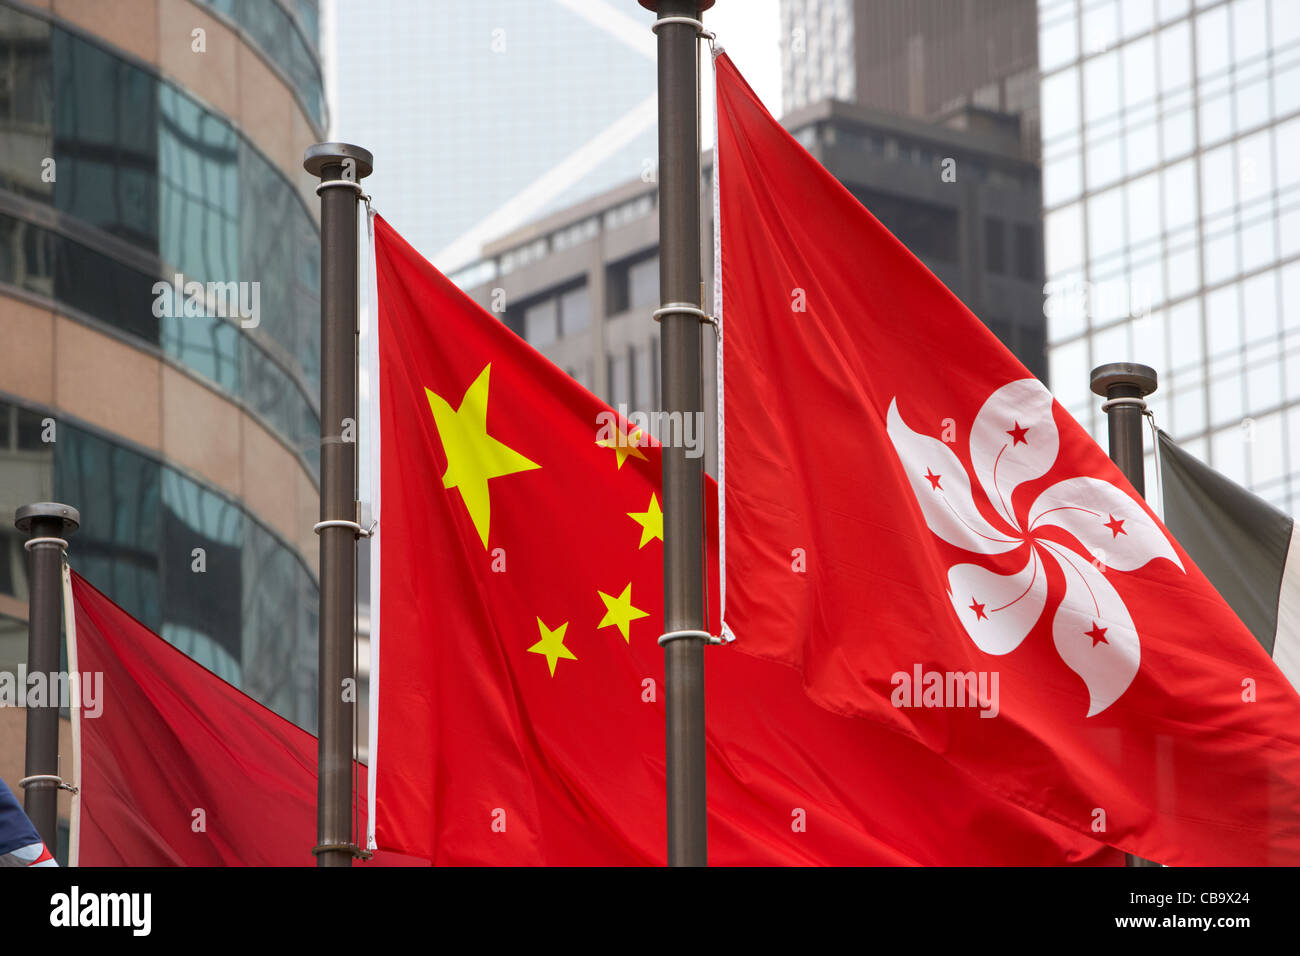 chinese and hong kong flags flying exchange square hong kong hksar china - Stock Image